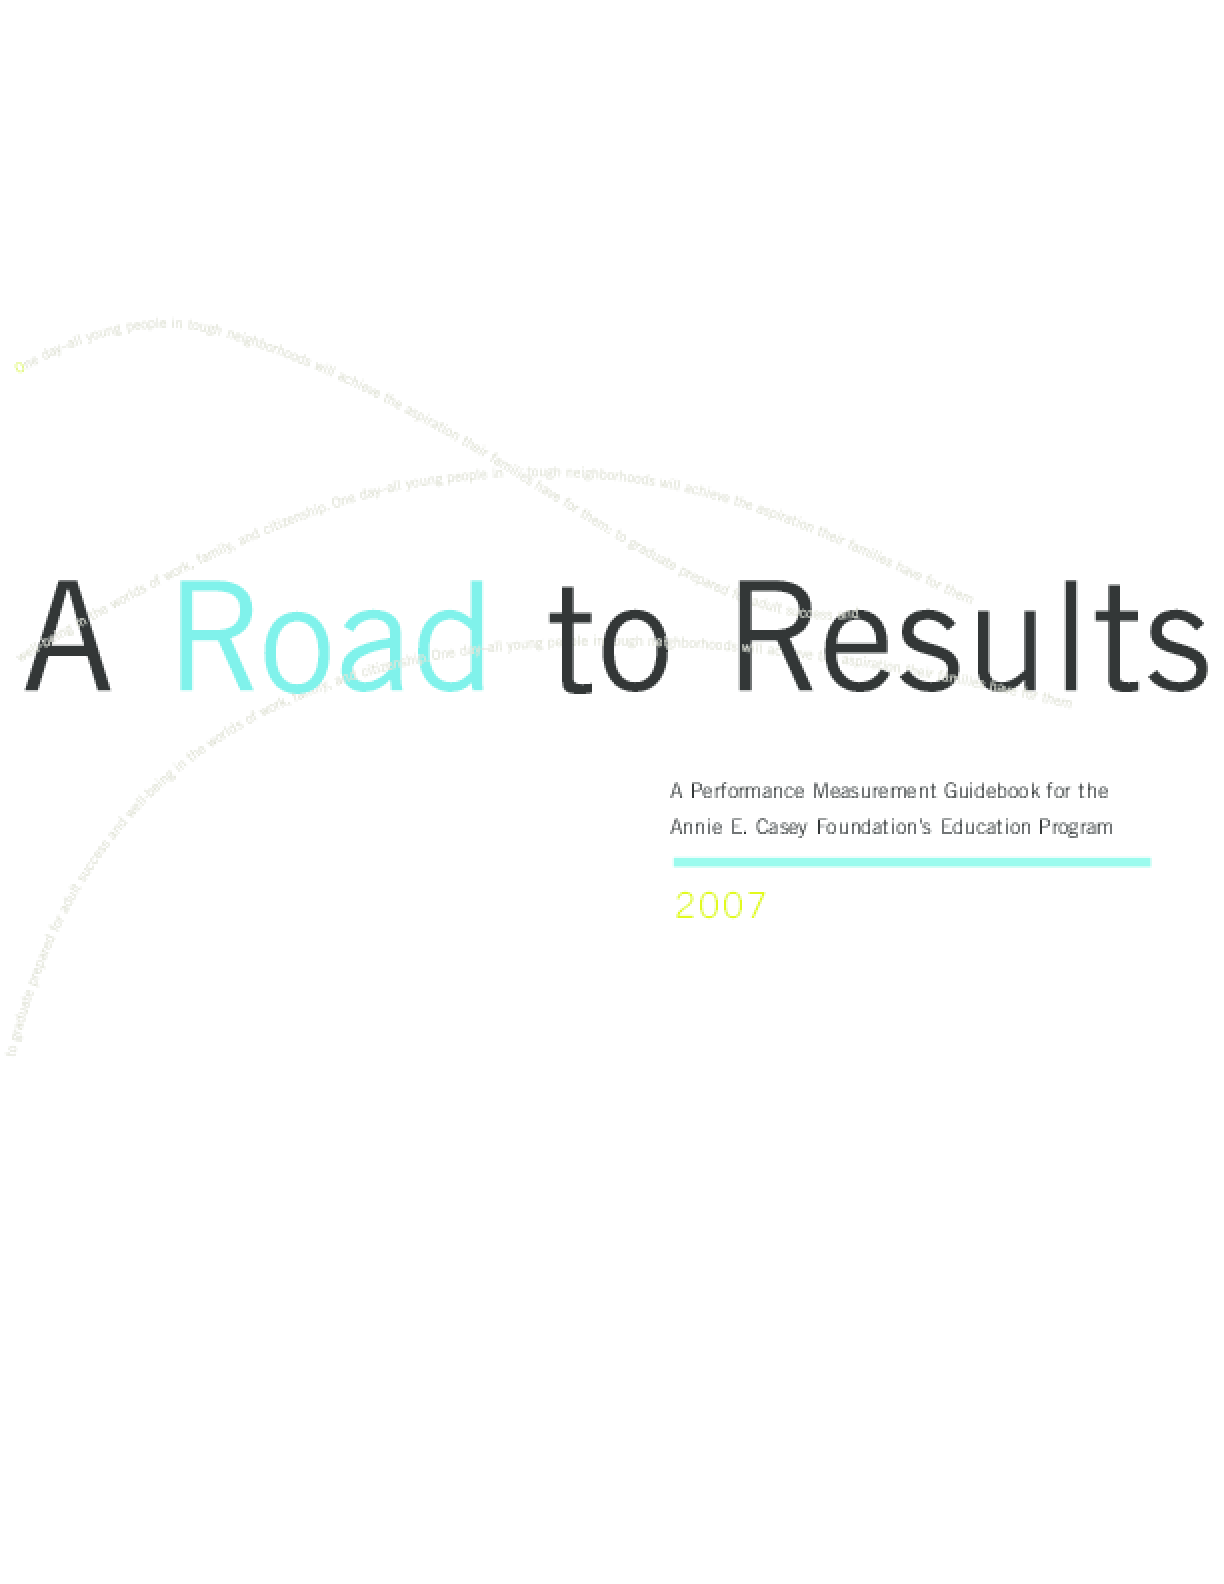 A Road to Results: A Performance Measurement Guidebook for the Annie E. Casey Foundation's Education Program